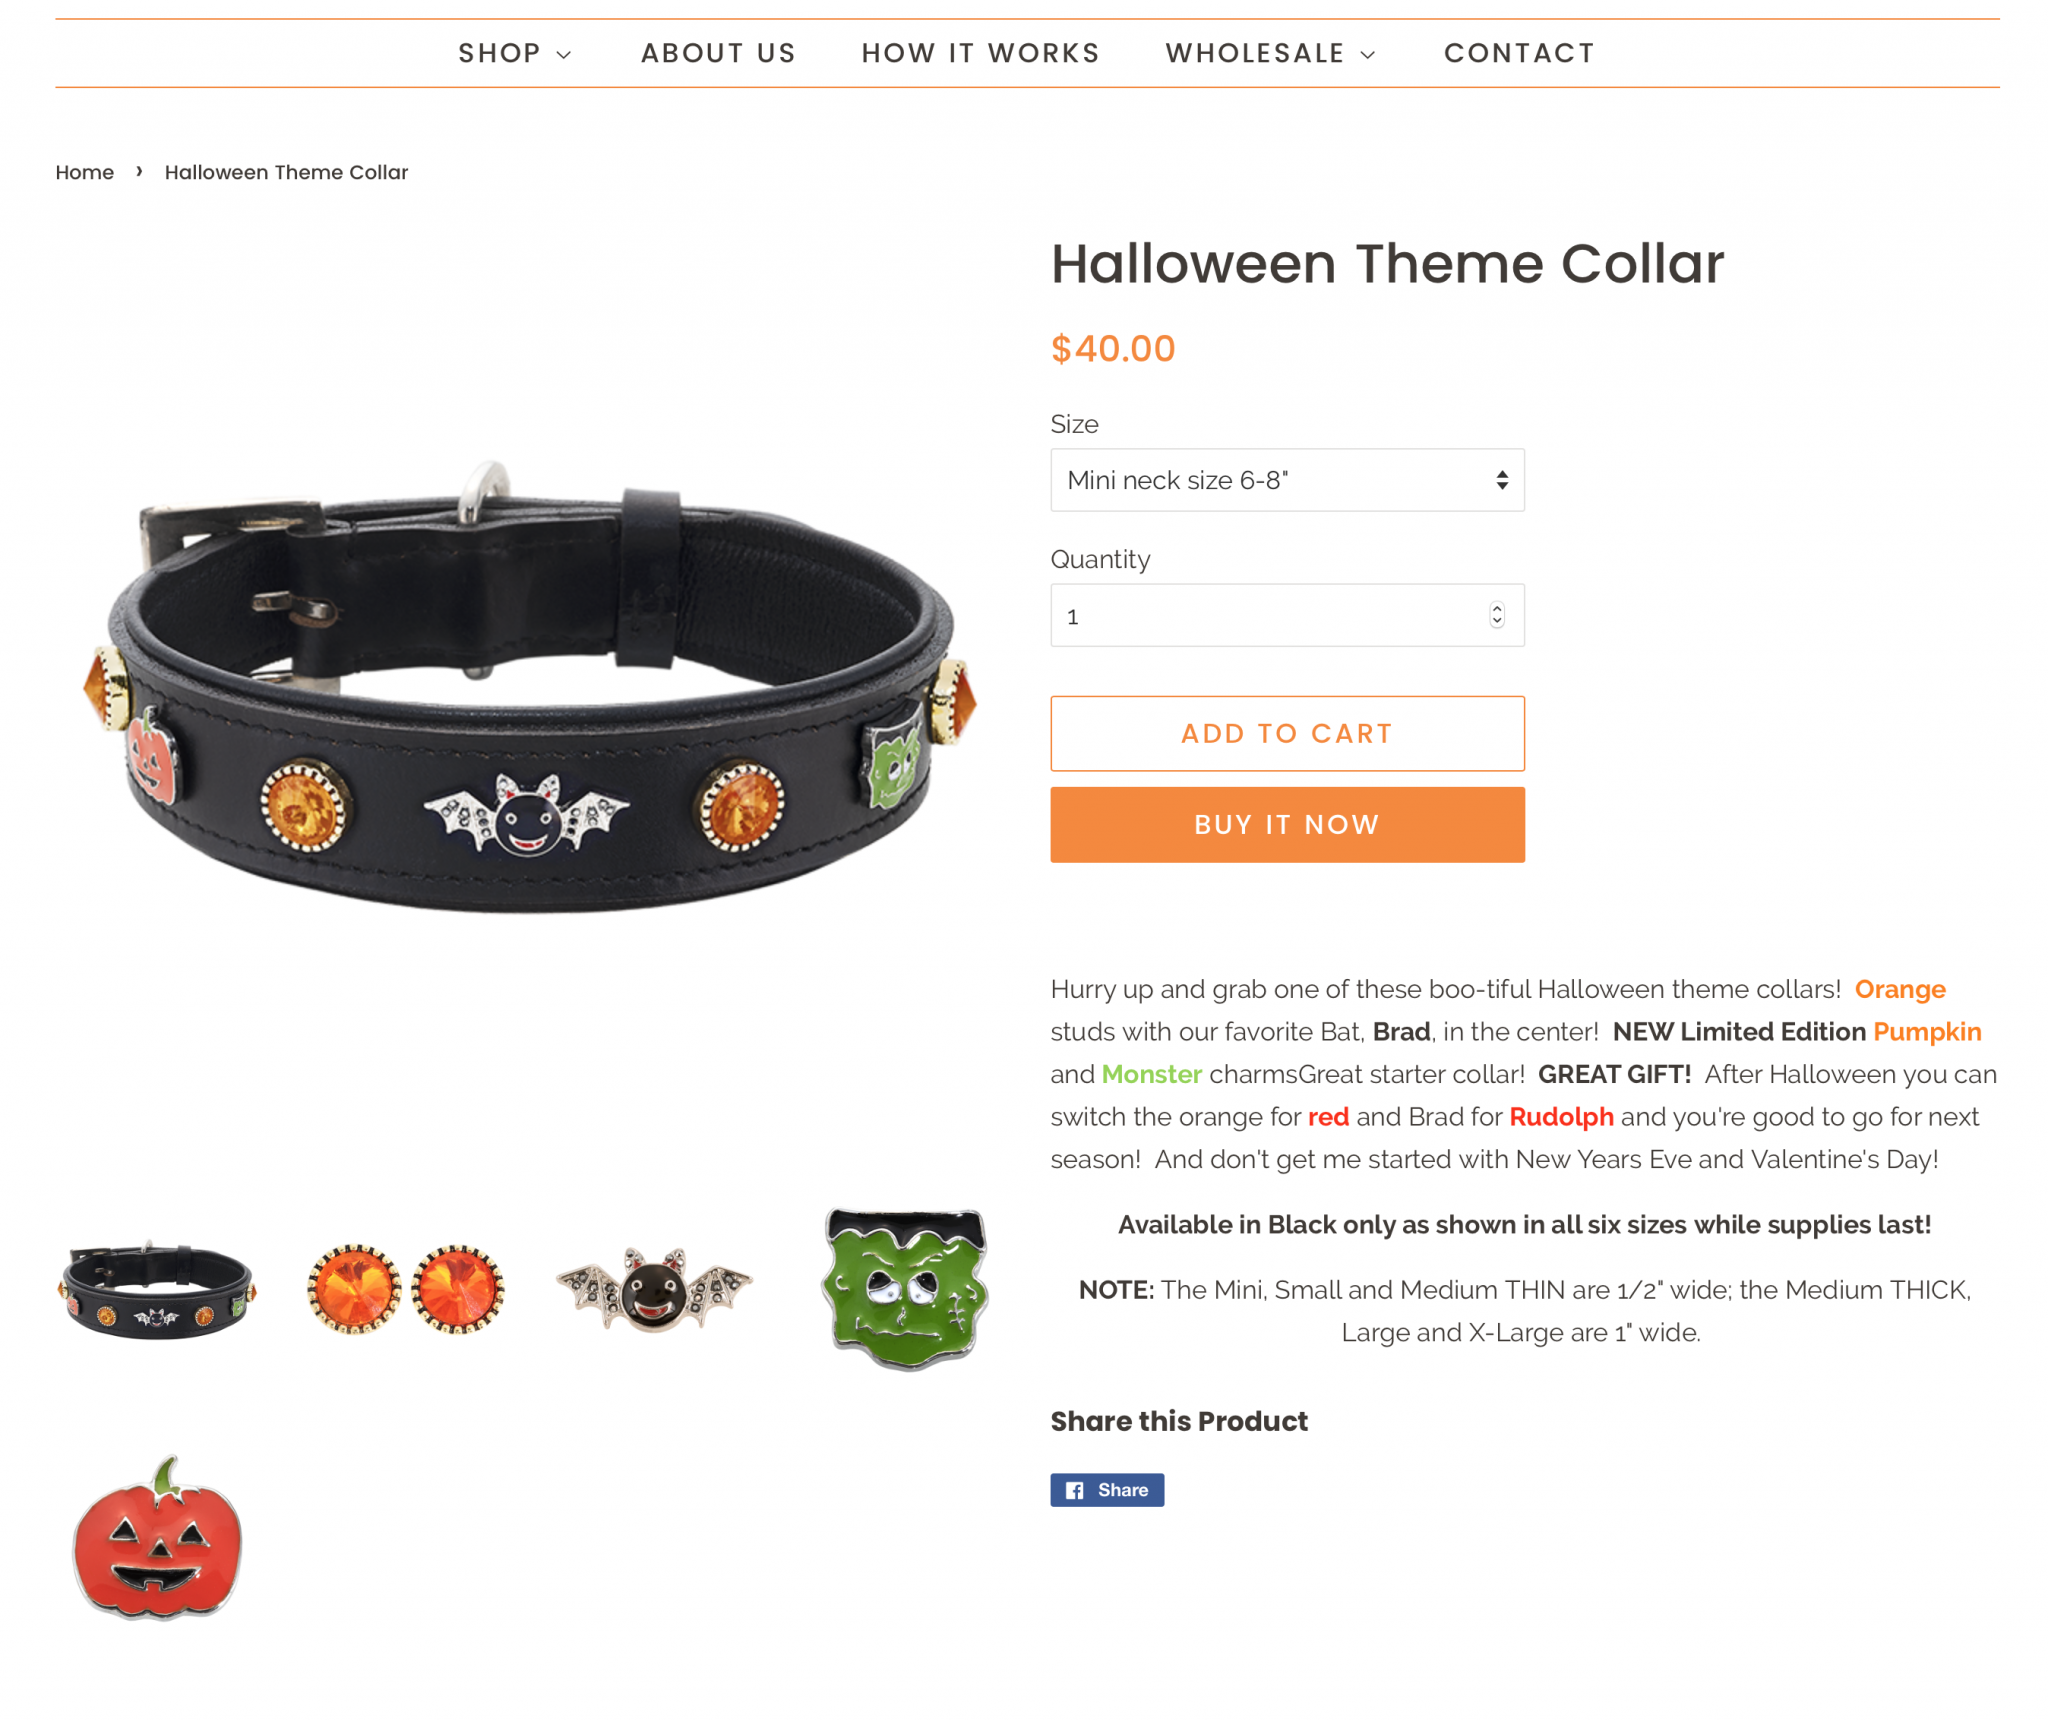 Web page of Halloween themed dog collar with cute charms with individual charms displayed below